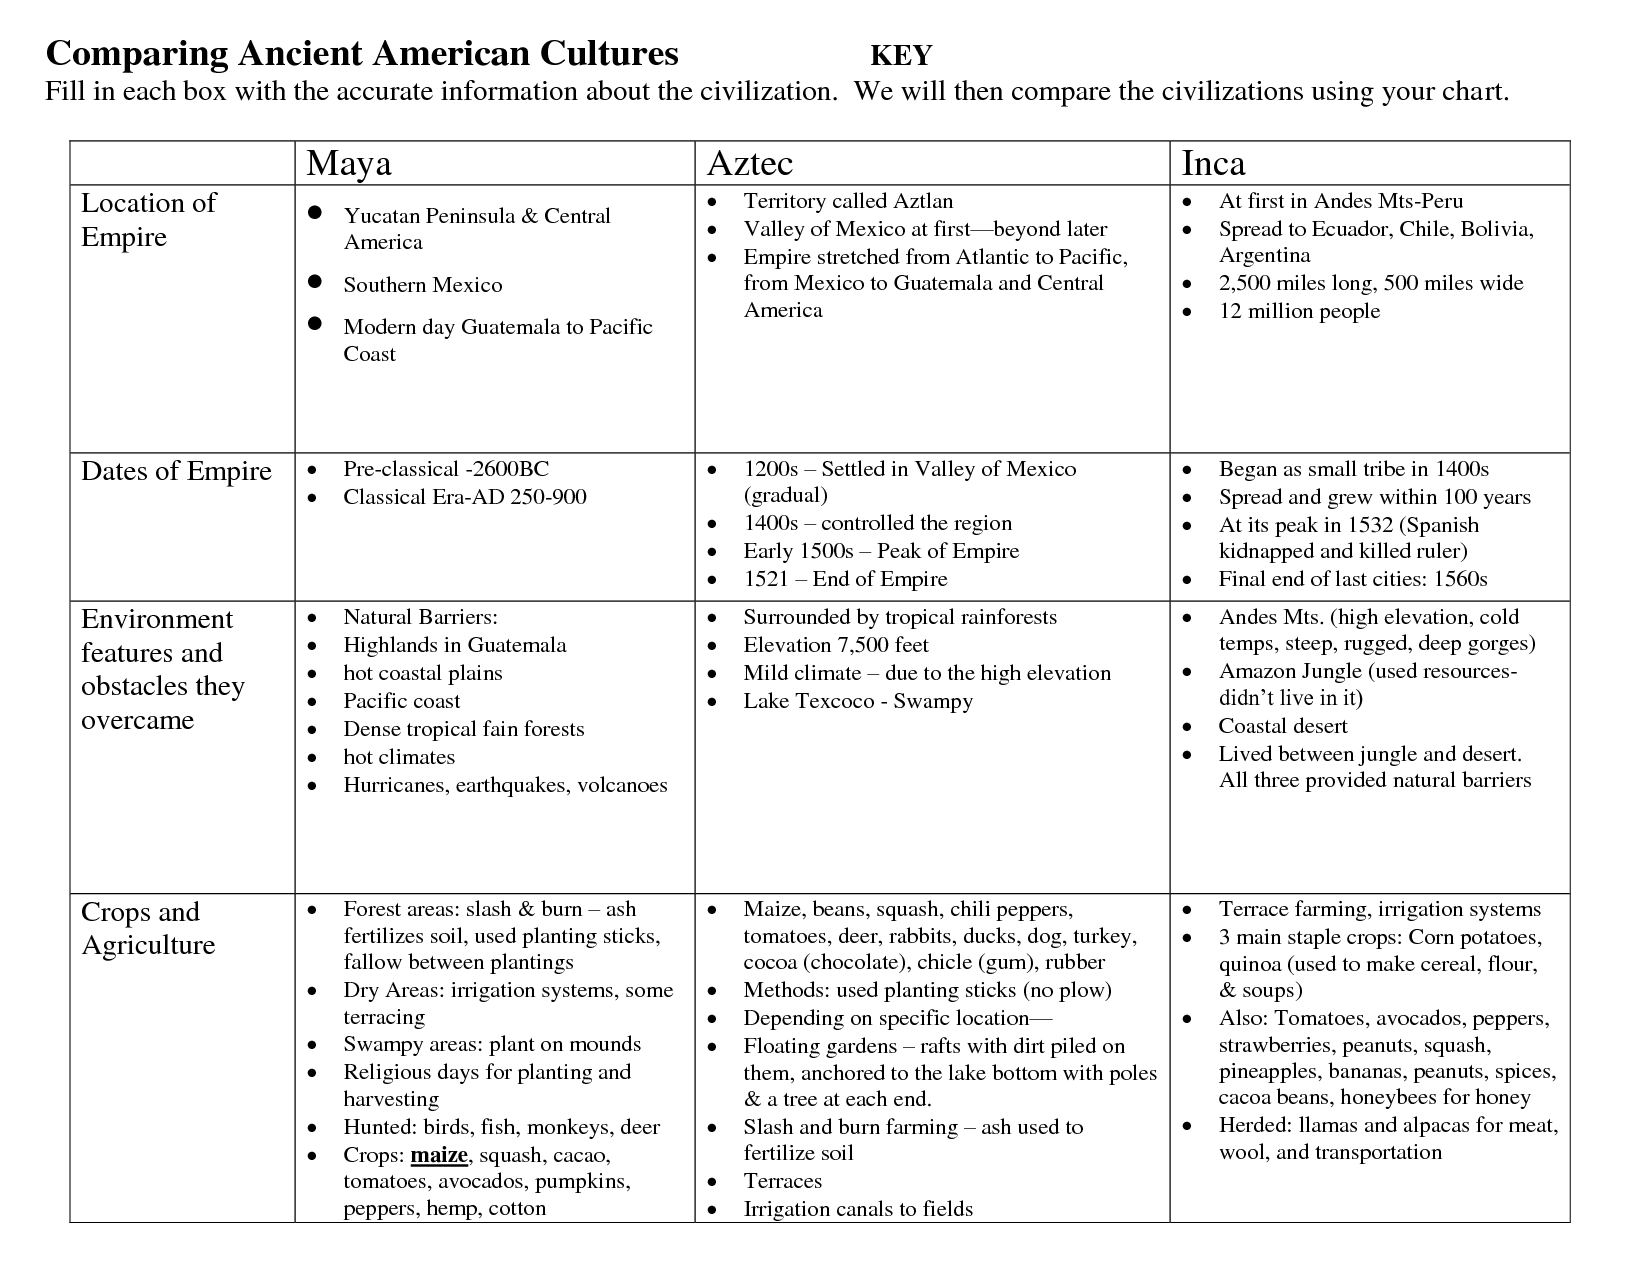 Aztecs Vs Incas Chart Comparing Ancient American Cultures Native